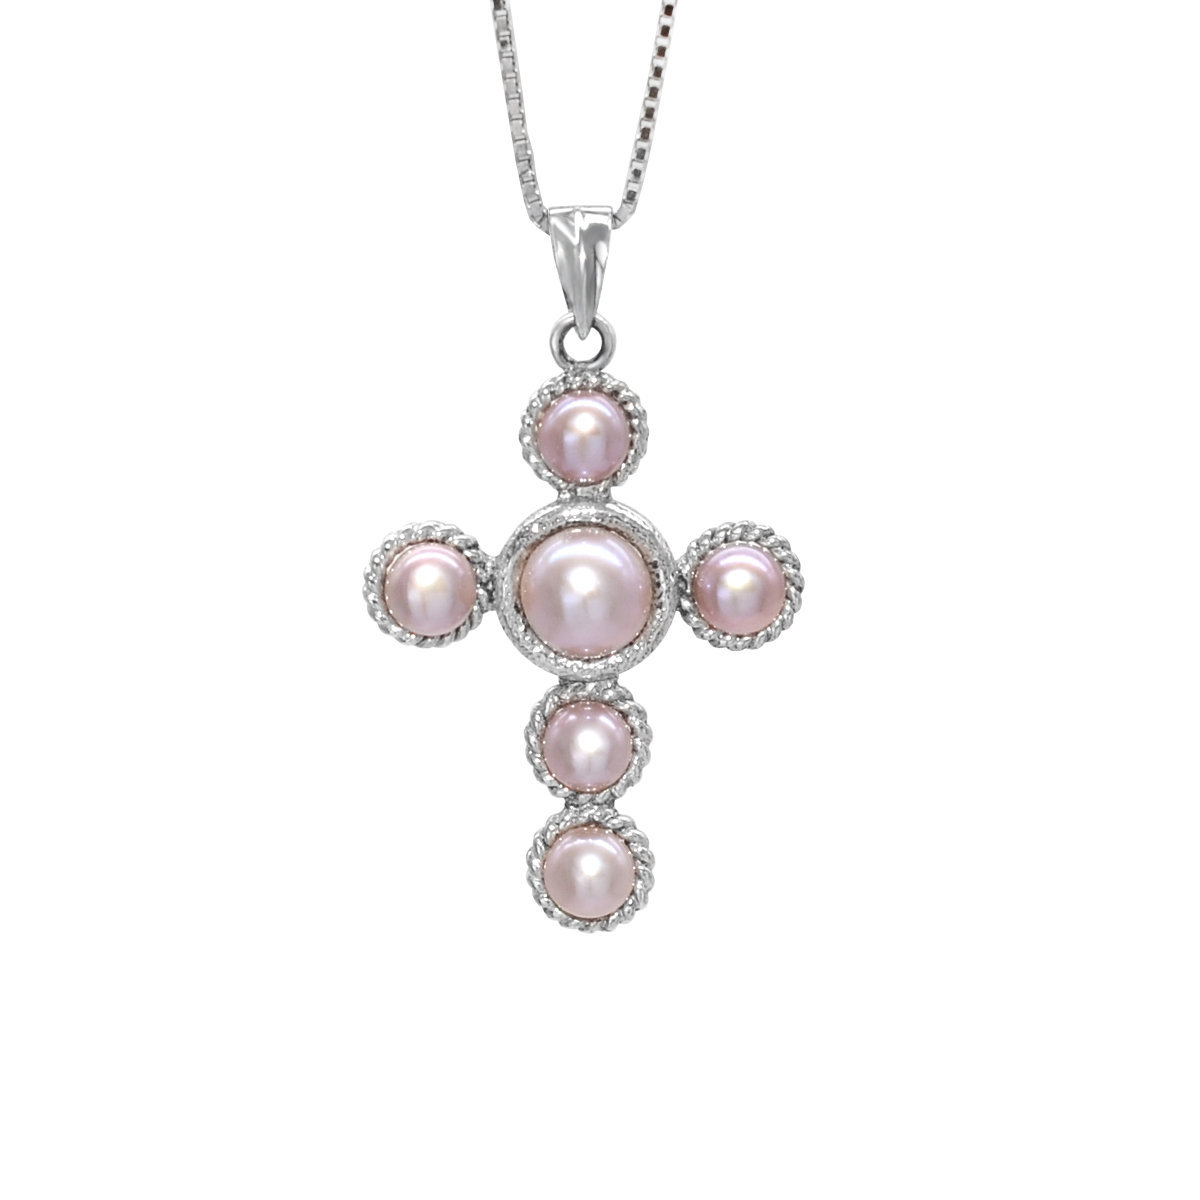 vintage cross- Cultured fresh water pearl with 925 silver pendant